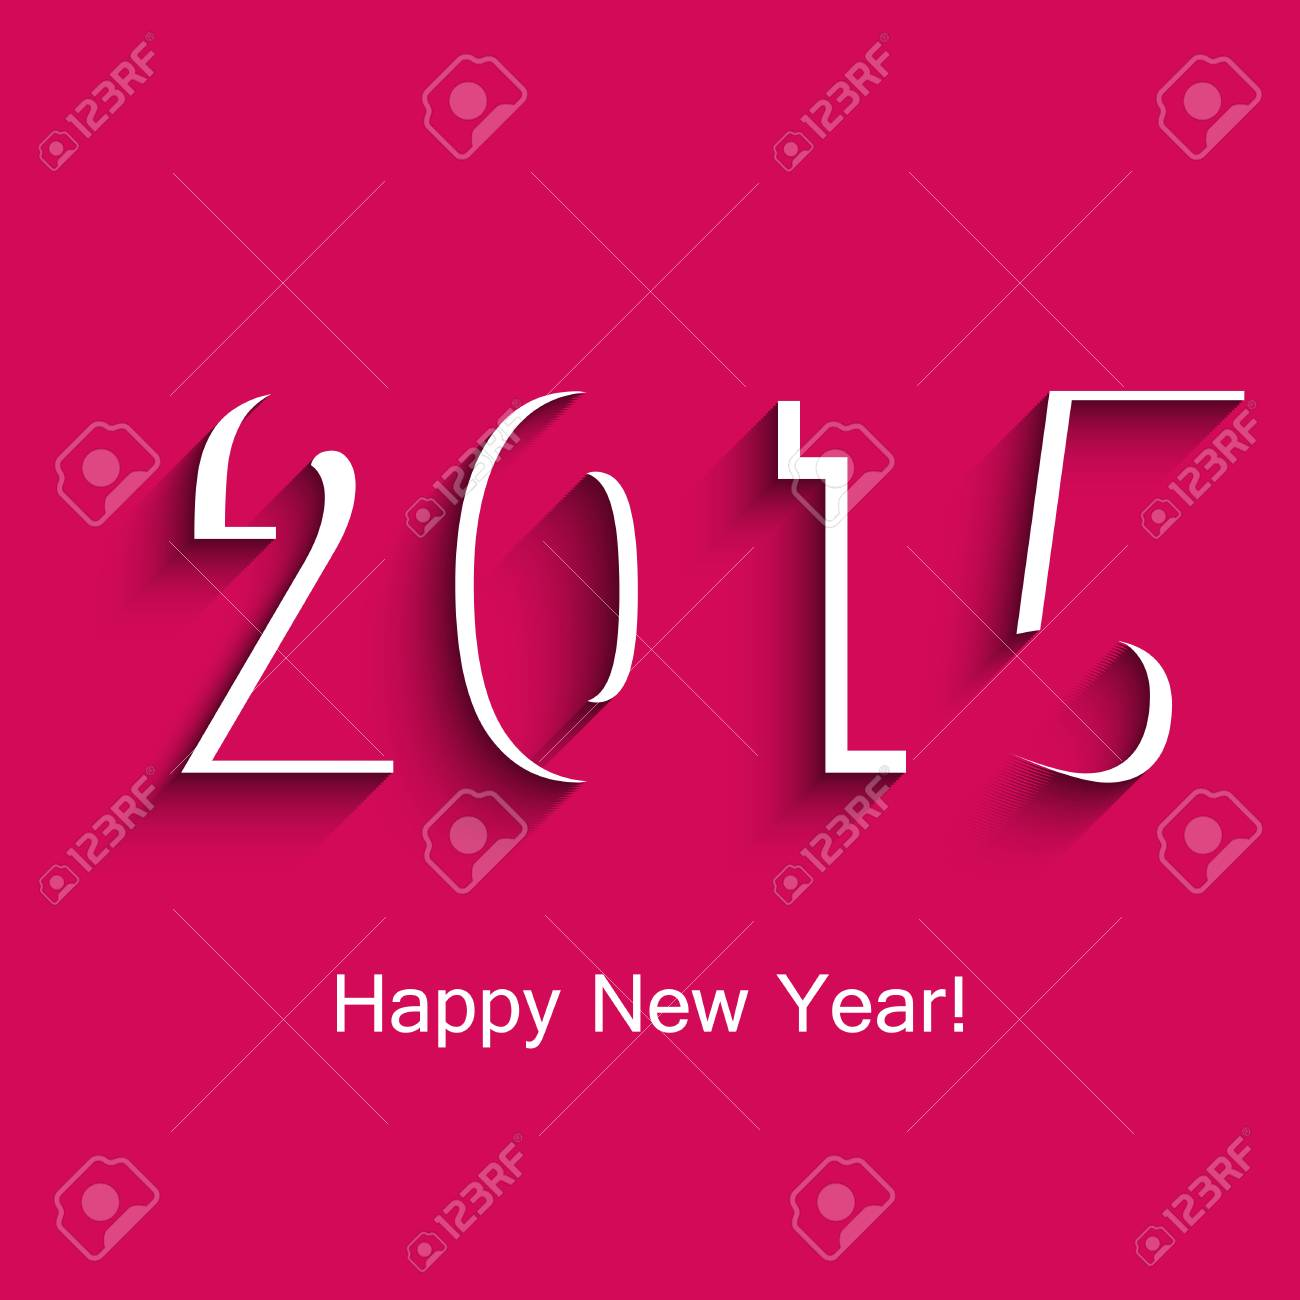 Happy New Year Greeting Card For 2015 Creative Vector Illustration